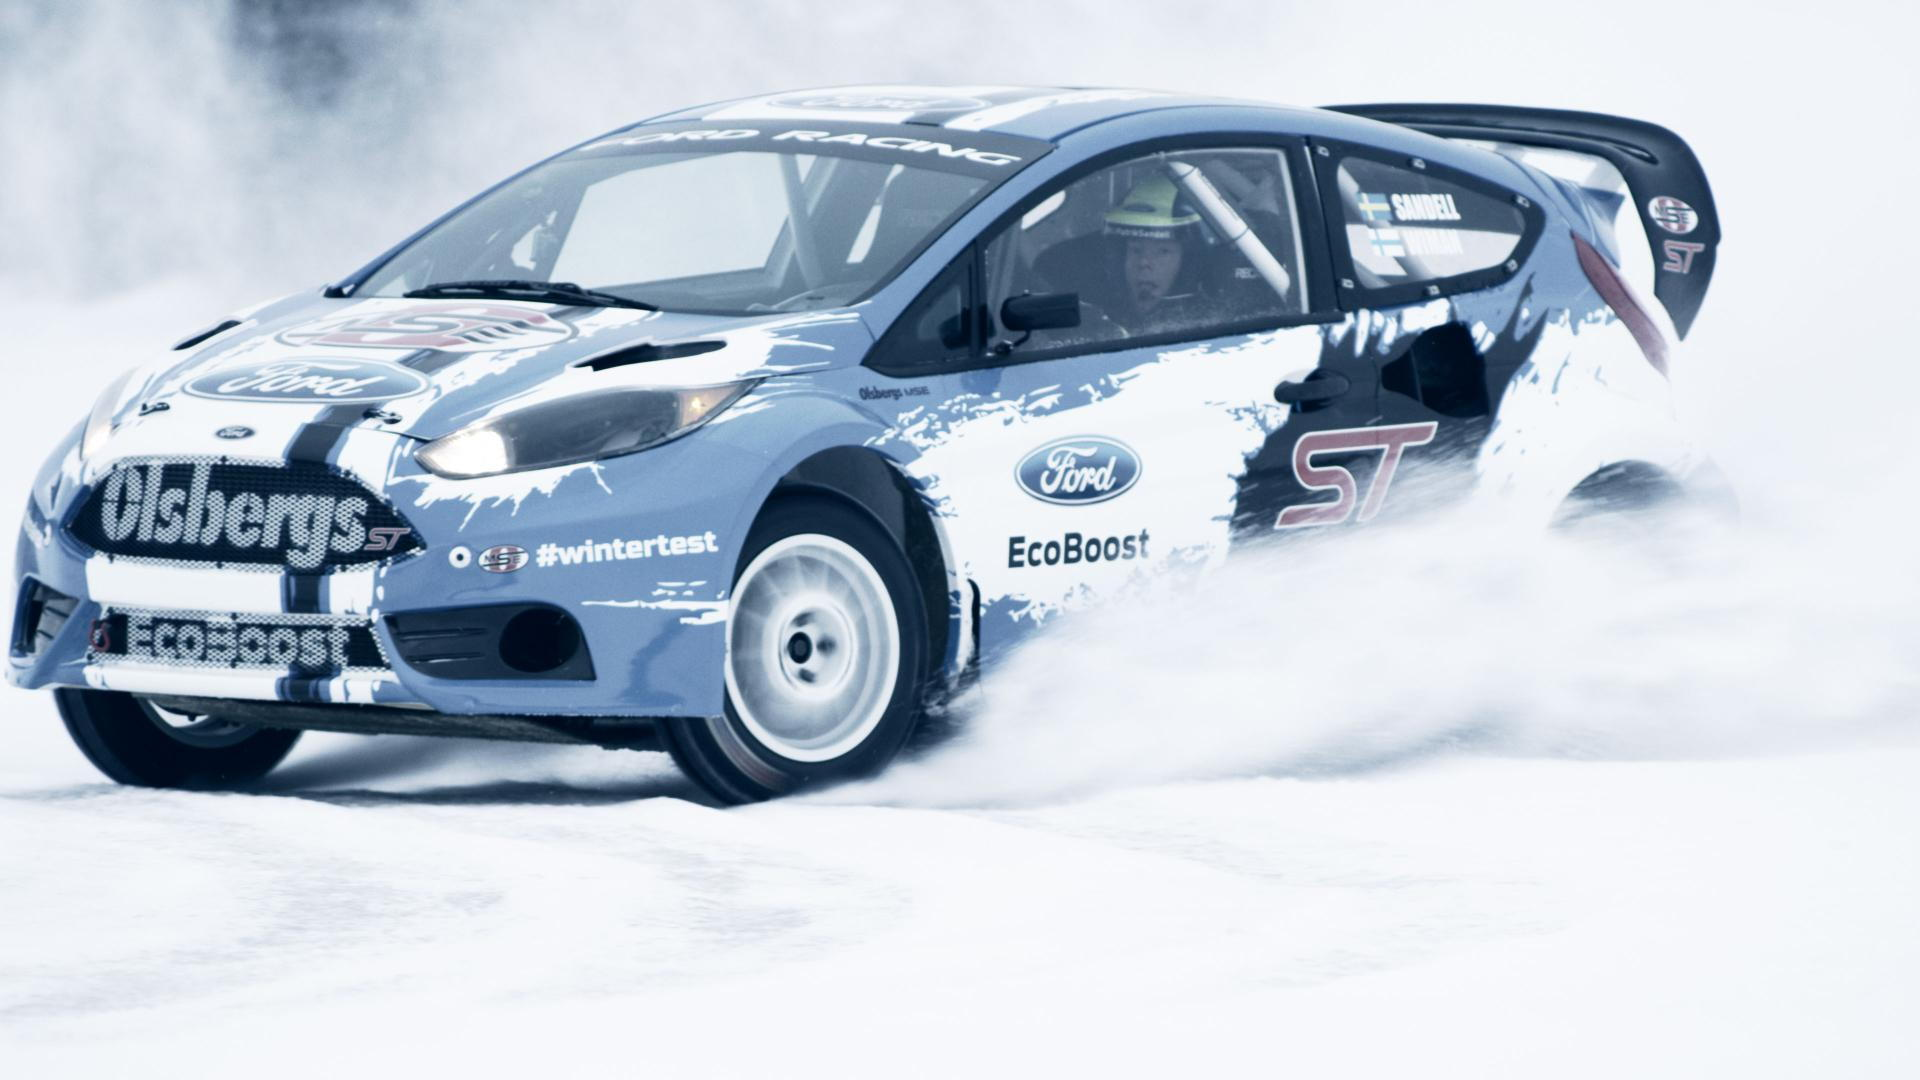 2014 Ford Fiesta ST rallycross car winter testing